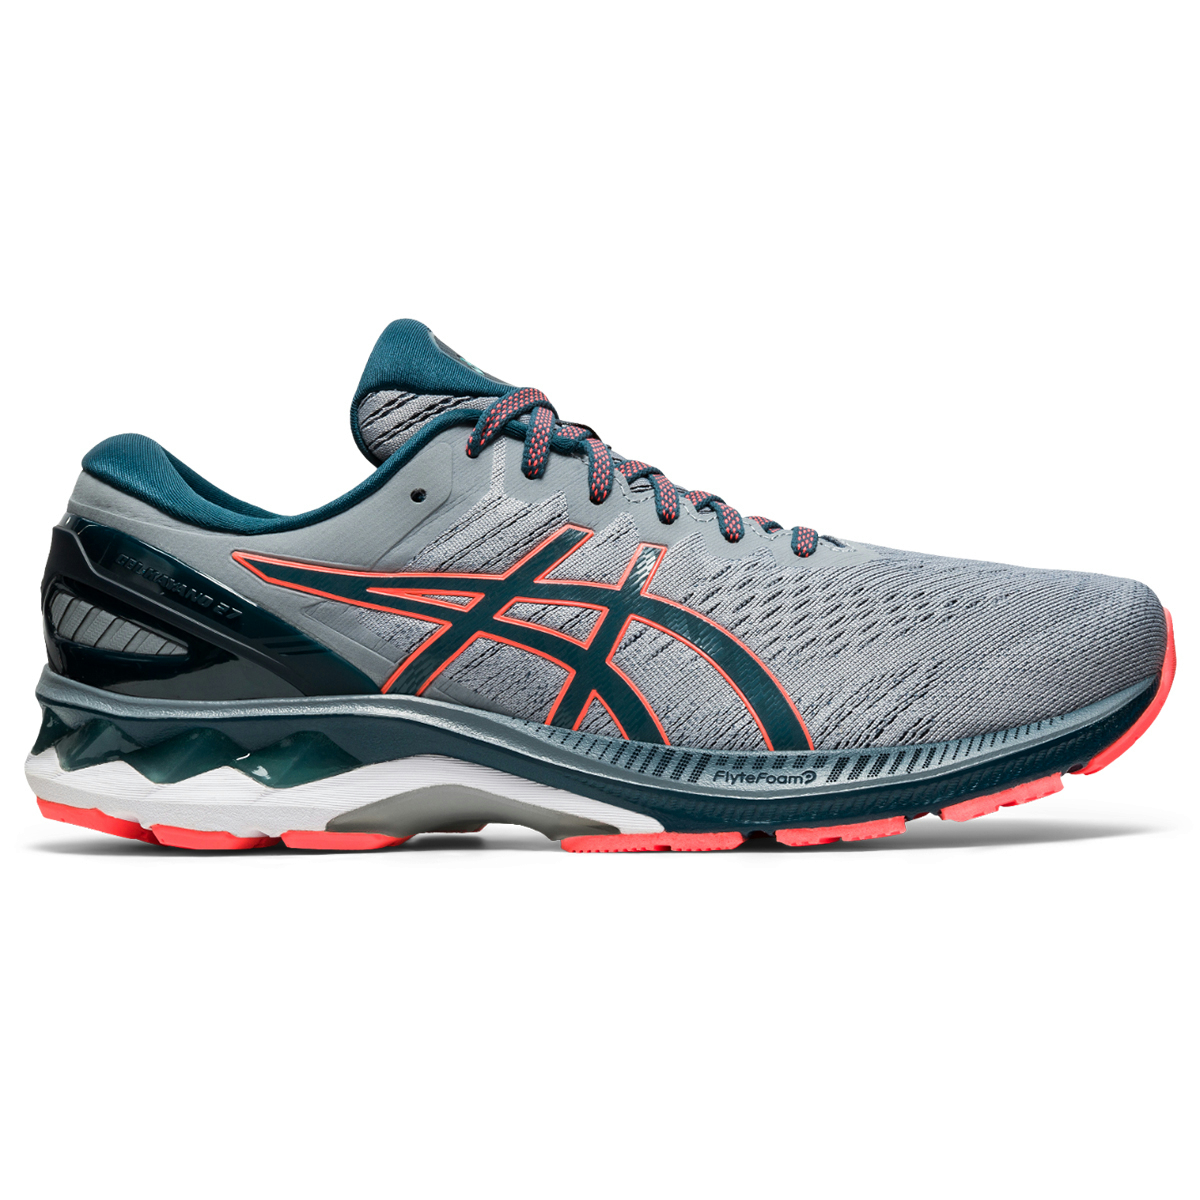 GEL-KAYANO 27 M grau